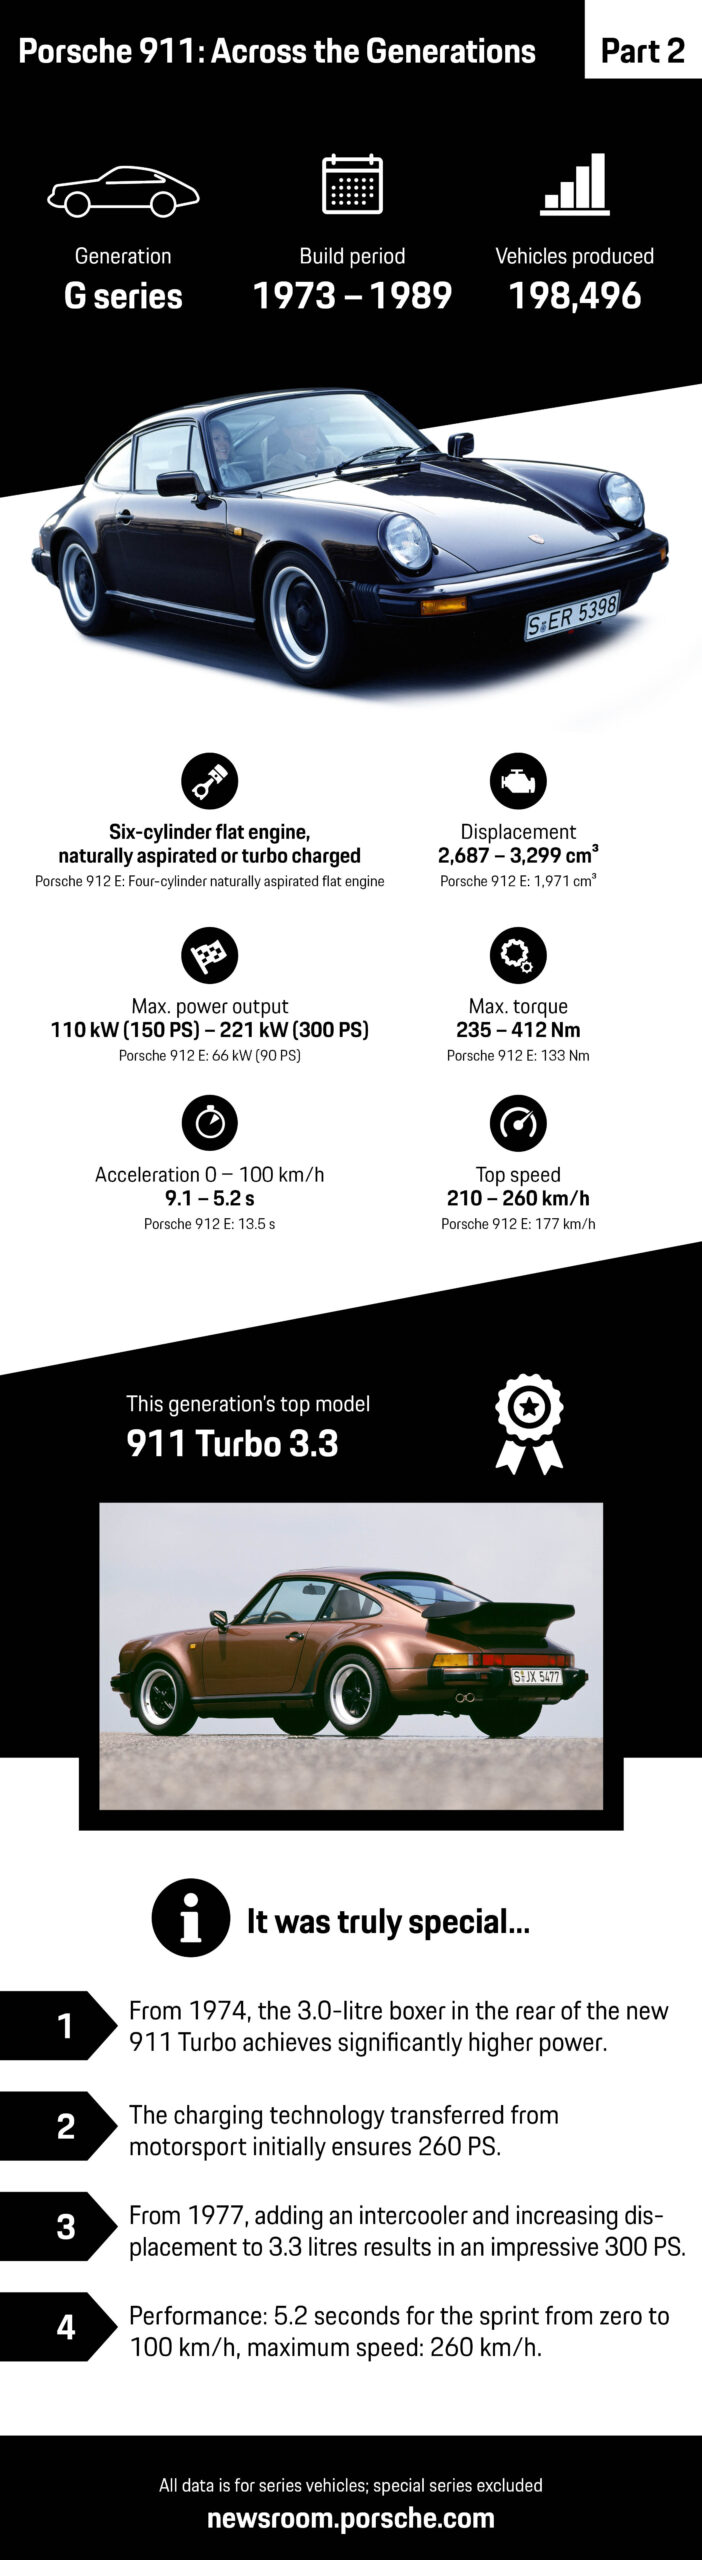 The G Model The 911 Gets Off to a Flying Start